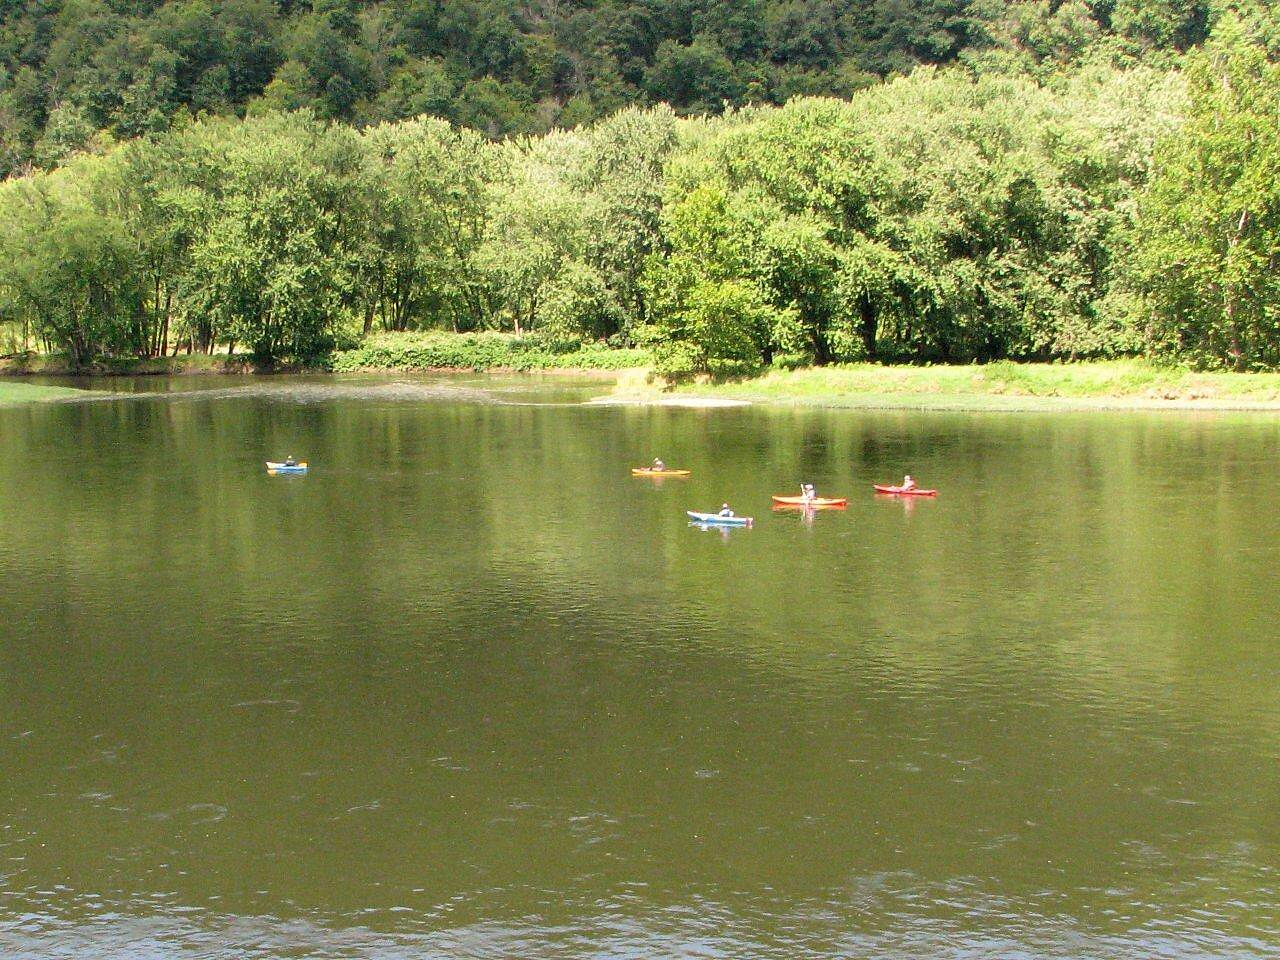 Allegheny River Trail Allegheny River fun in the water!